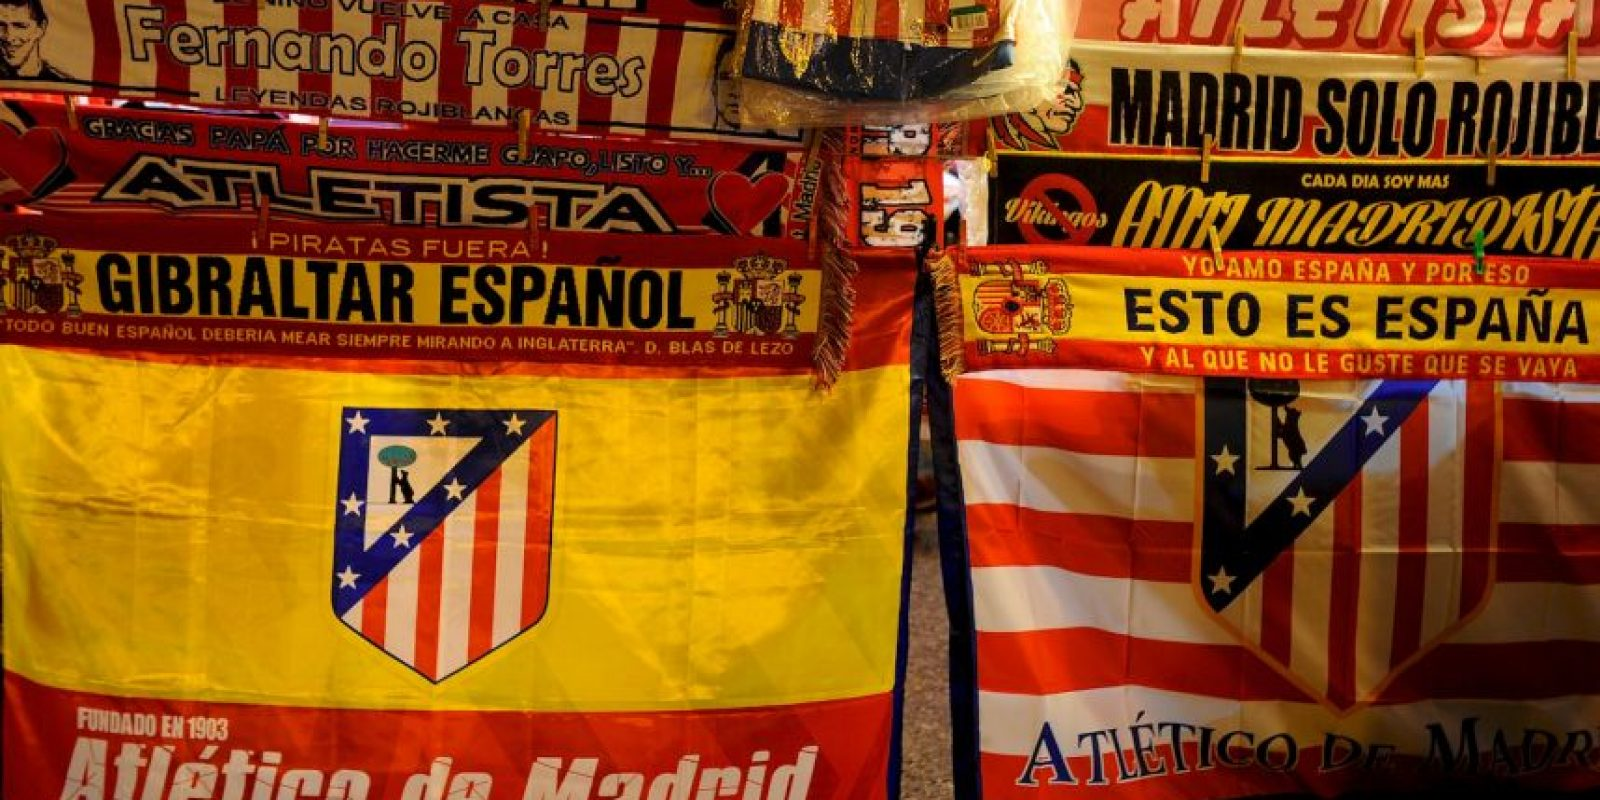 2. Atlético de Madrid Foto: Getty Images